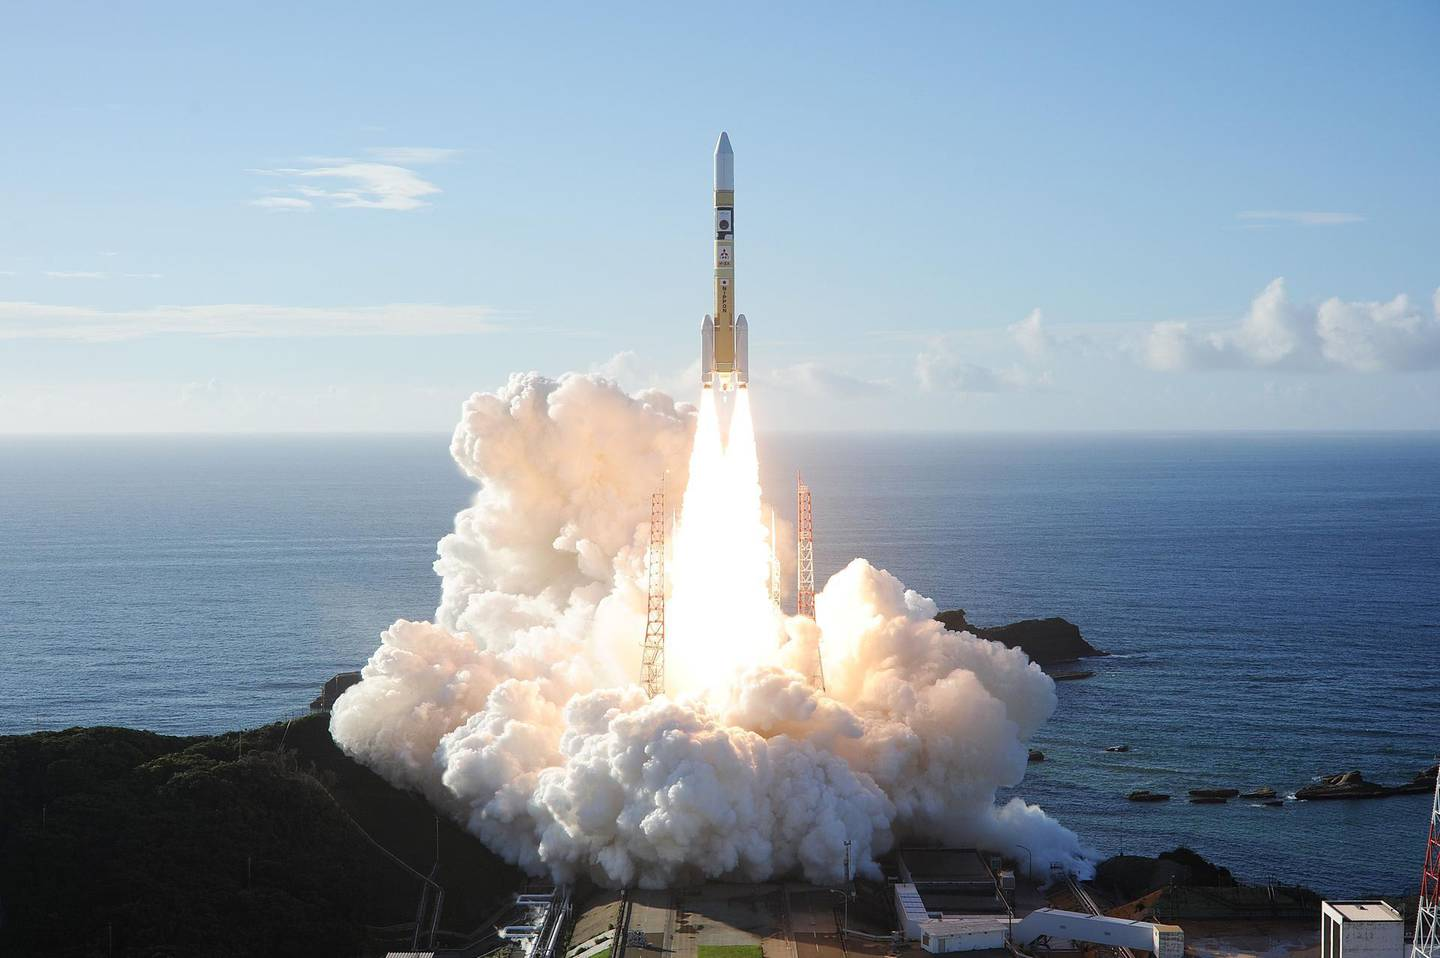 """In this handout photograph taken and released on July 20, 2020 by Mitsubishi Heavy Industries an H-2A rocket carrying the Hope Probe known as """"Al-Amal"""" in Arabic, developed by the Mohammed Bin Rashid Space Centre (MBRSC) in the United Arab Emirates (UAE) to explore Mars, blasts off from Tanegashima Space Centre in southwestern Japan. The first Arab space mission to Mars blasted off on July 20 aboard a rocket from Japan, with the probe dubbed """"Hope"""" successfully separating about an hour after liftoff. - --- RESTRICTED TO EDITORIAL USE - MANDATORY CREDIT """"AFP PHOTO / (MITSUBISHI HEAVY INDUSTRIES)"""" - NO MARKETING NO ADVERTISING CAMPAIGNS - DISTRIBUTED AS A SERVICE TO CLIENTS ---  / AFP / Mitsubishi Heavy Industries / Handout / --- RESTRICTED TO EDITORIAL USE - MANDATORY CREDIT """"AFP PHOTO / (MITSUBISHI HEAVY INDUSTRIES)"""" - NO MARKETING NO ADVERTISING CAMPAIGNS - DISTRIBUTED AS A SERVICE TO CLIENTS ---"""